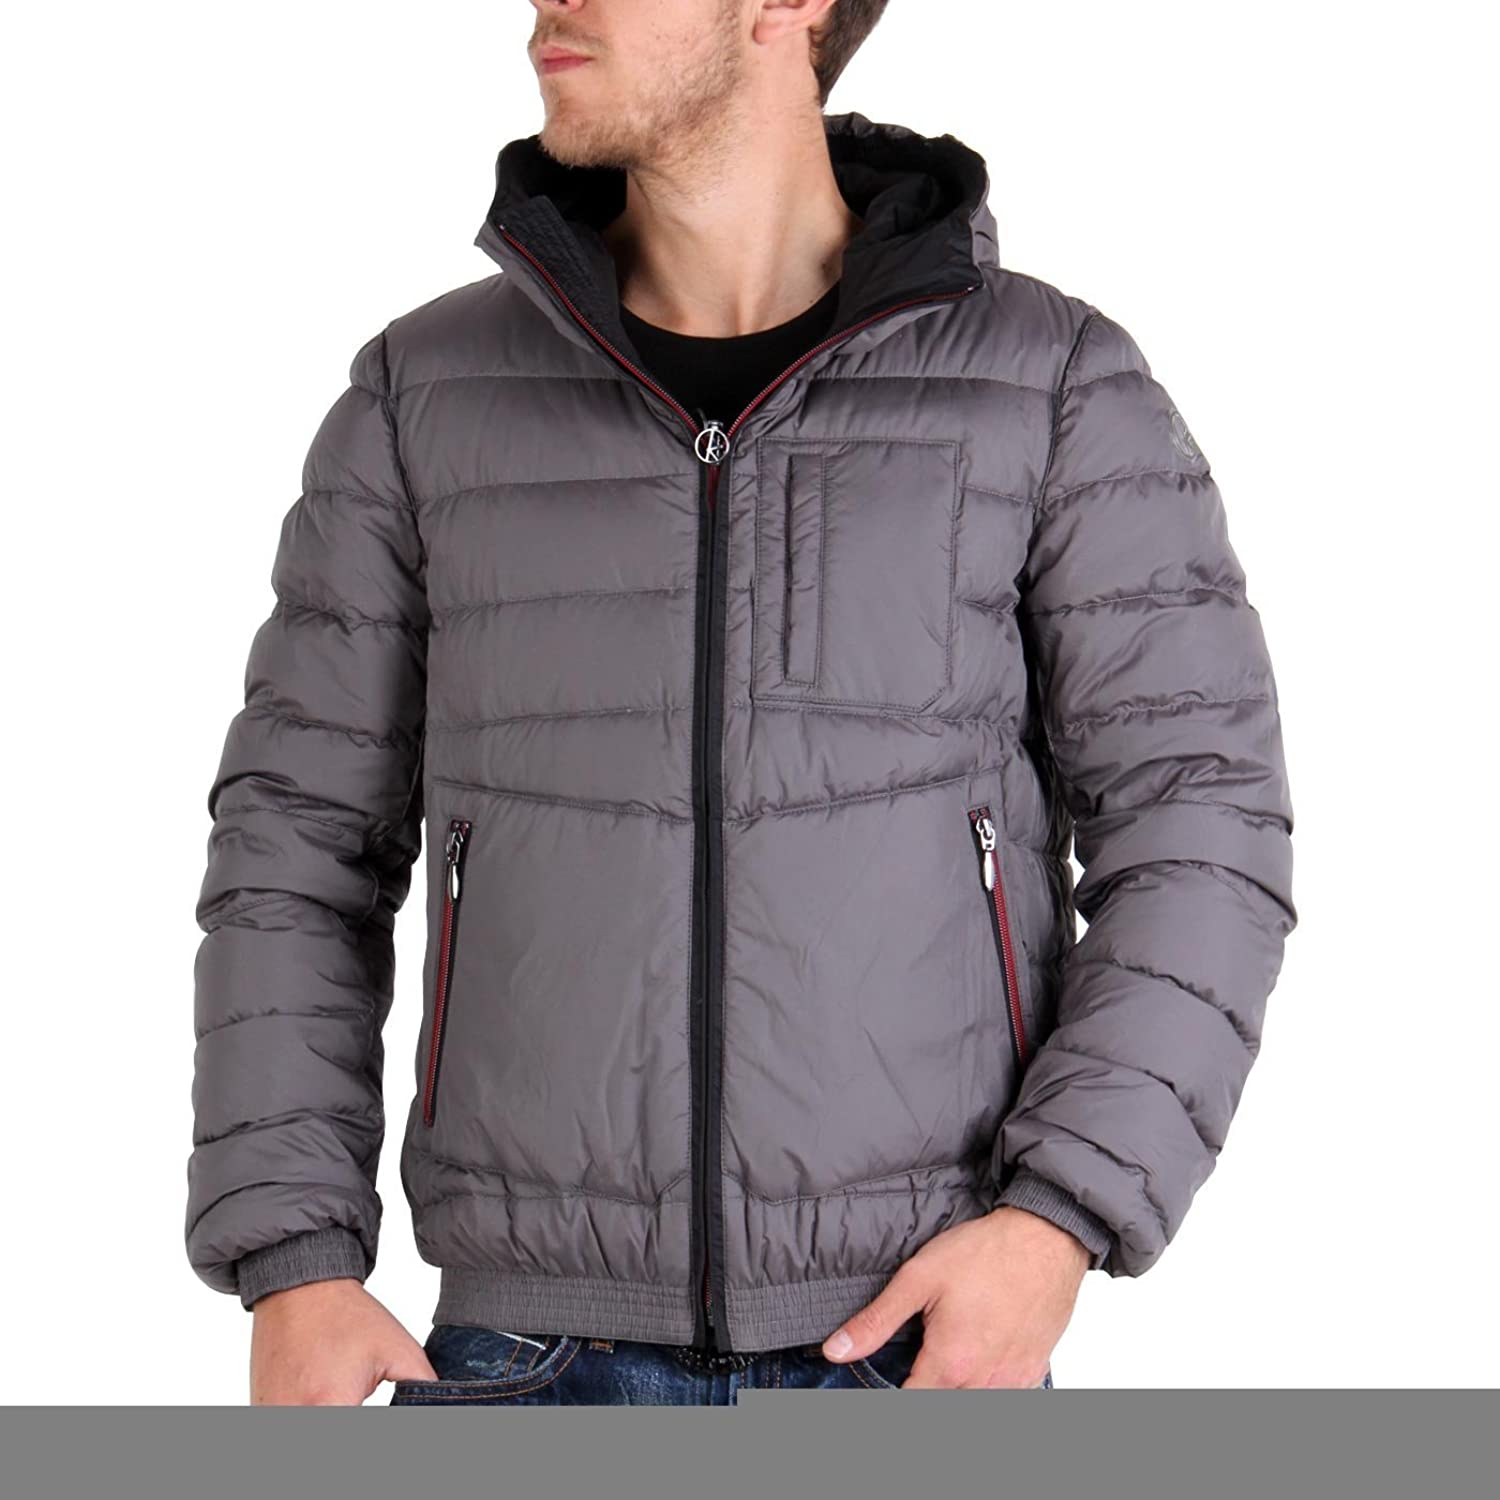 KALEBE mens down jacket ACI 12